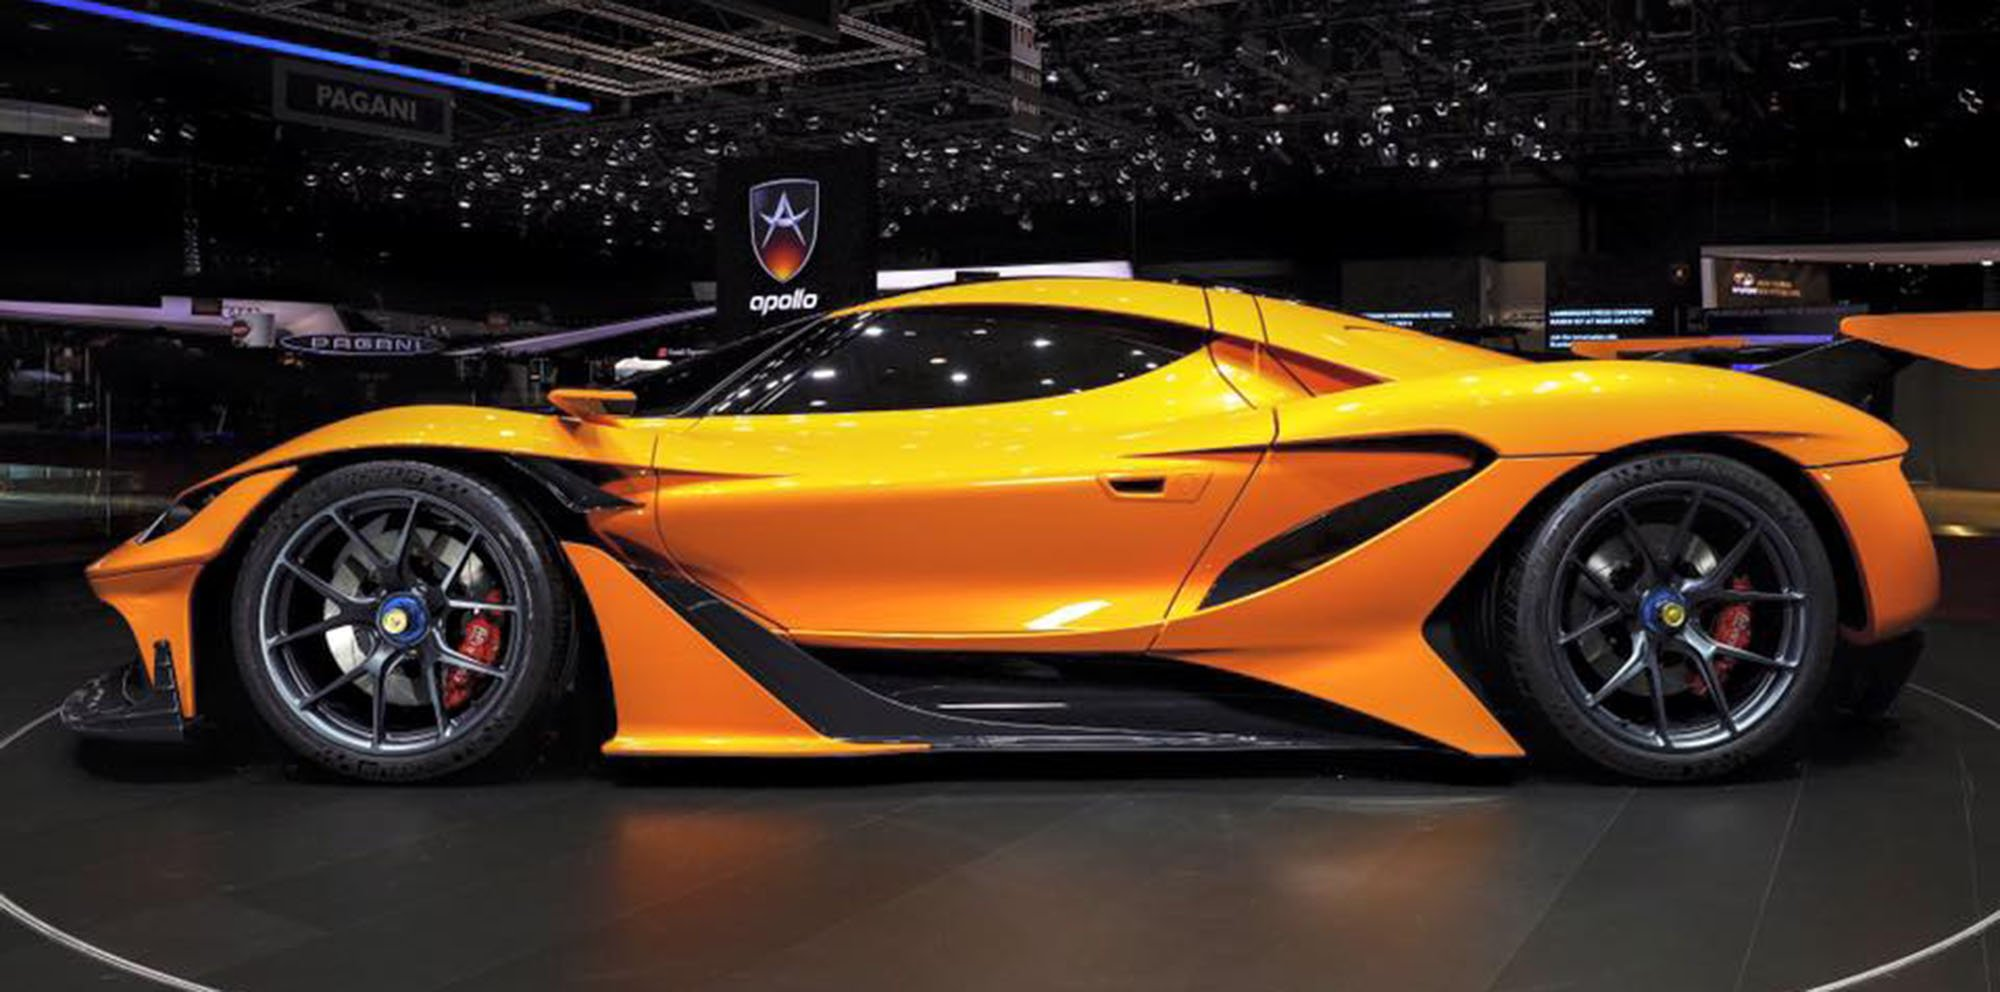 Apollo Arrow Supercar First New Supercar From Revived